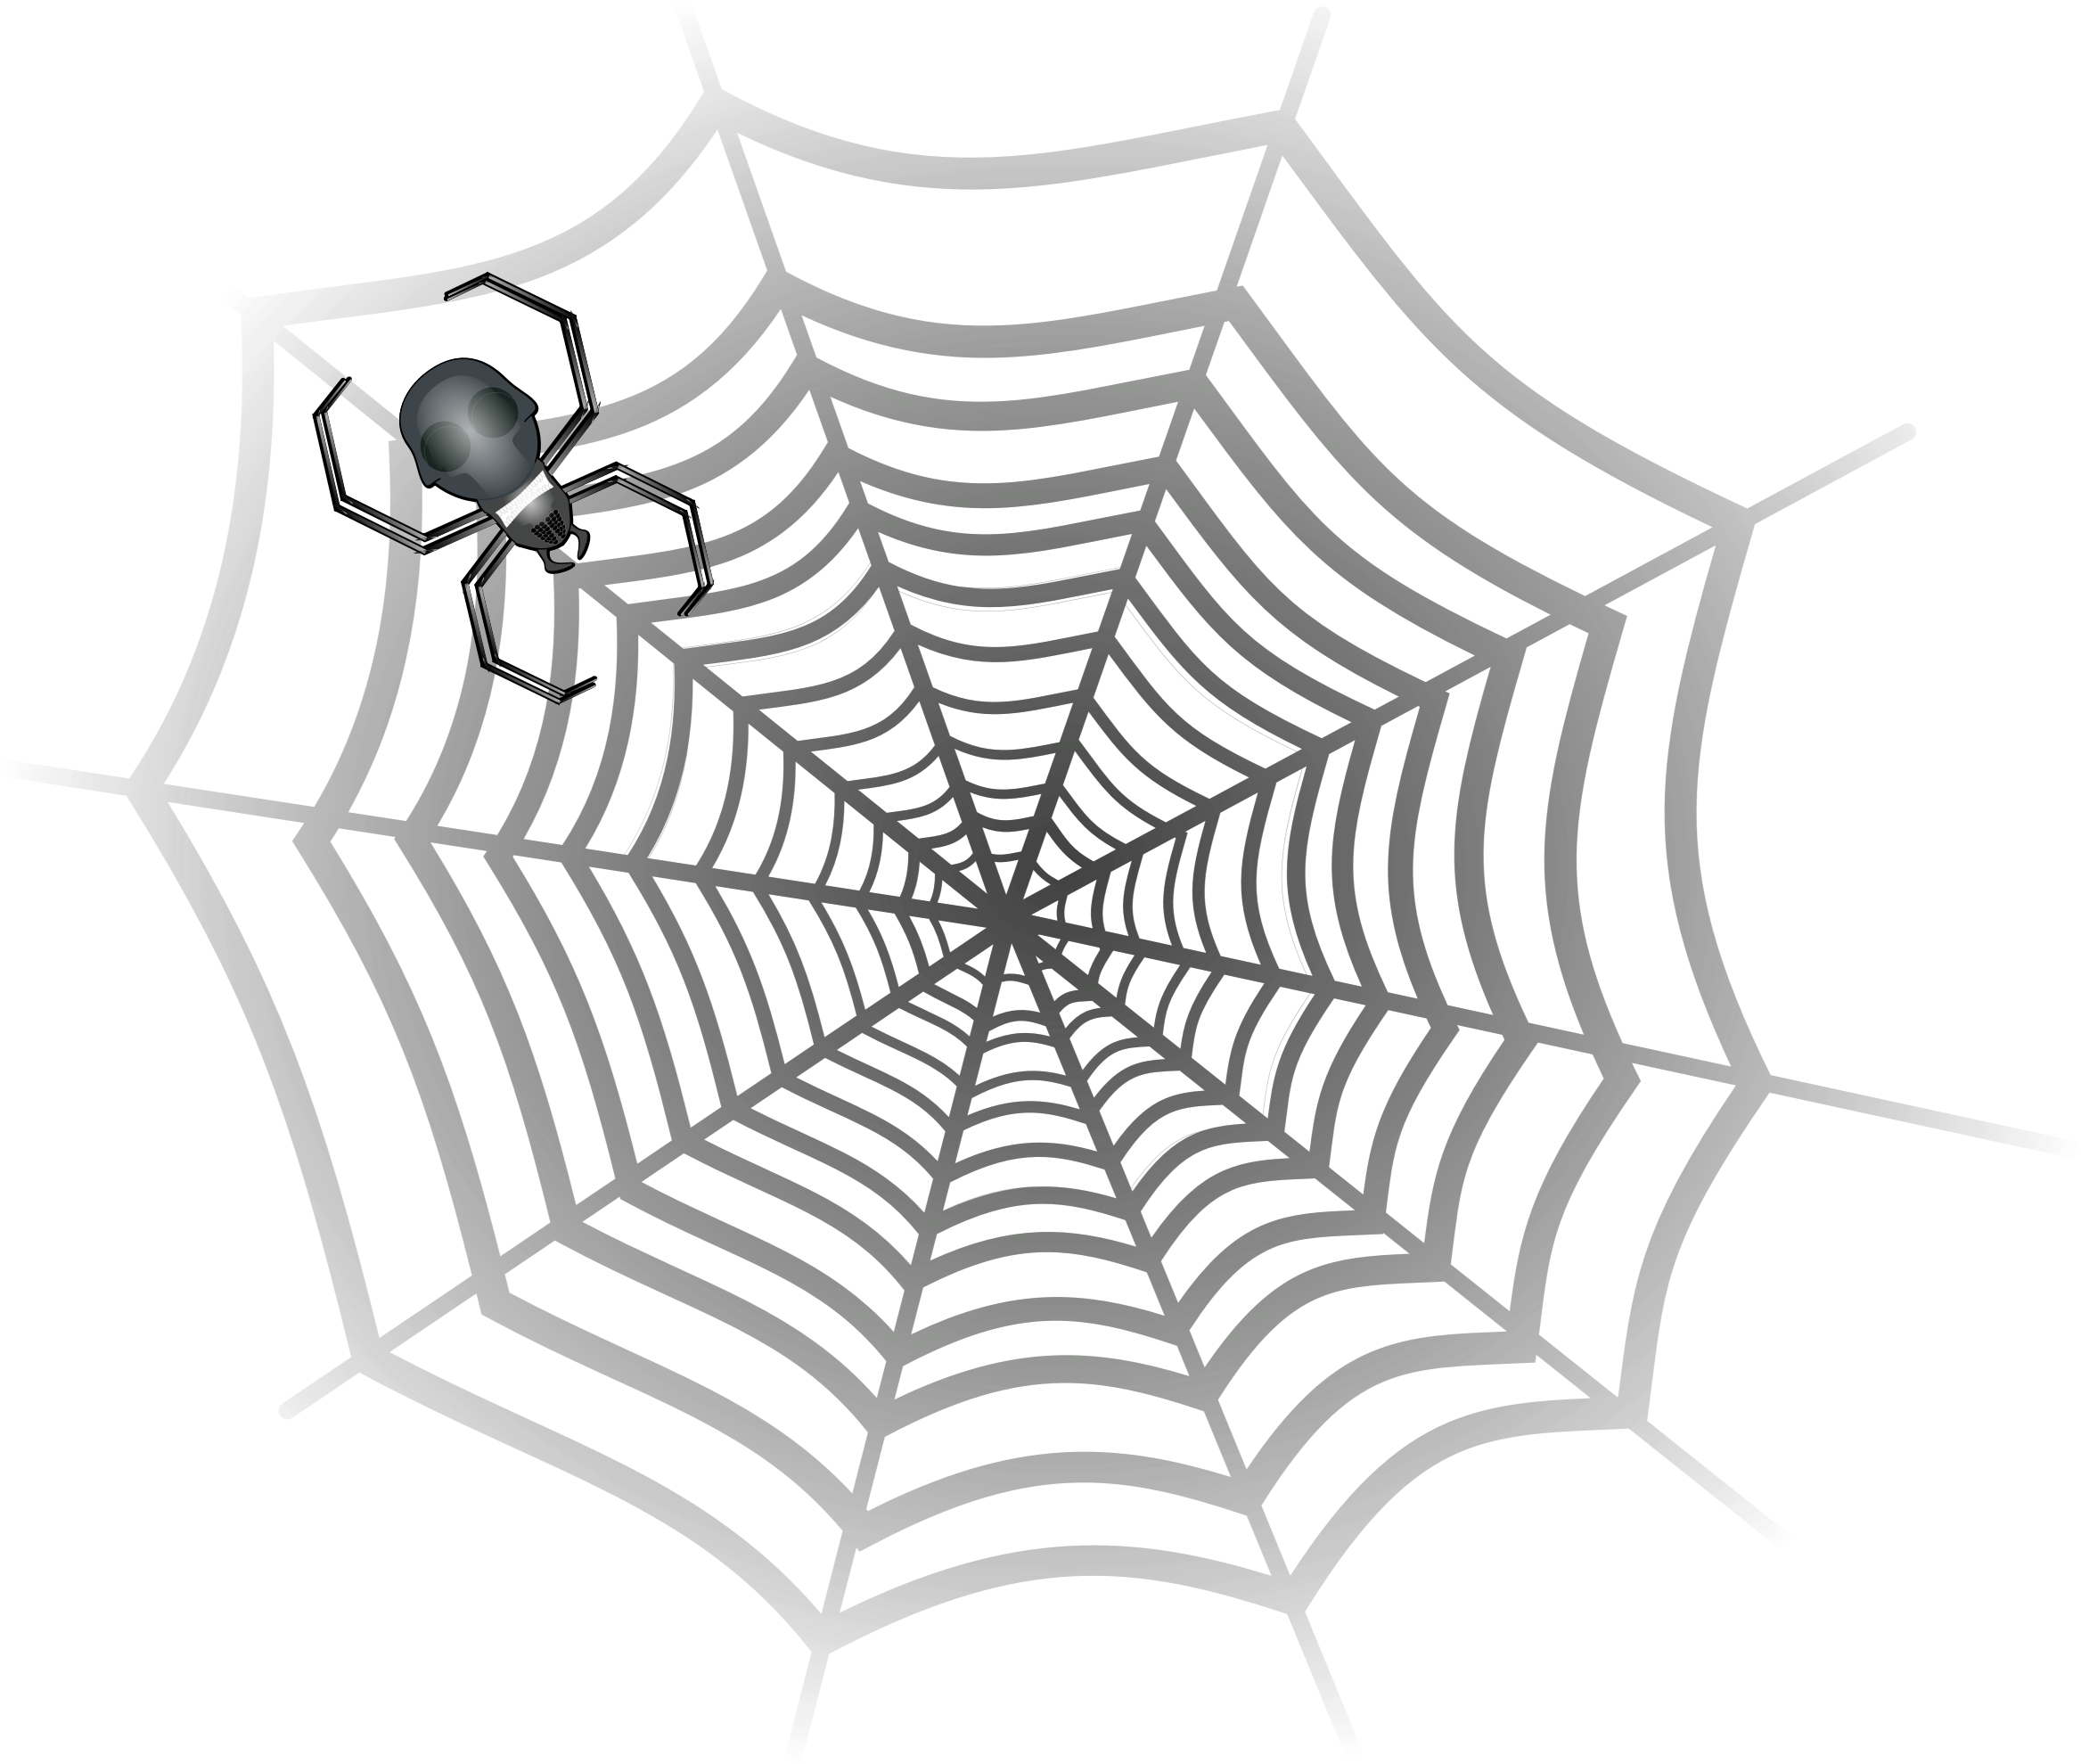 png Spider in web clipart. Big image png